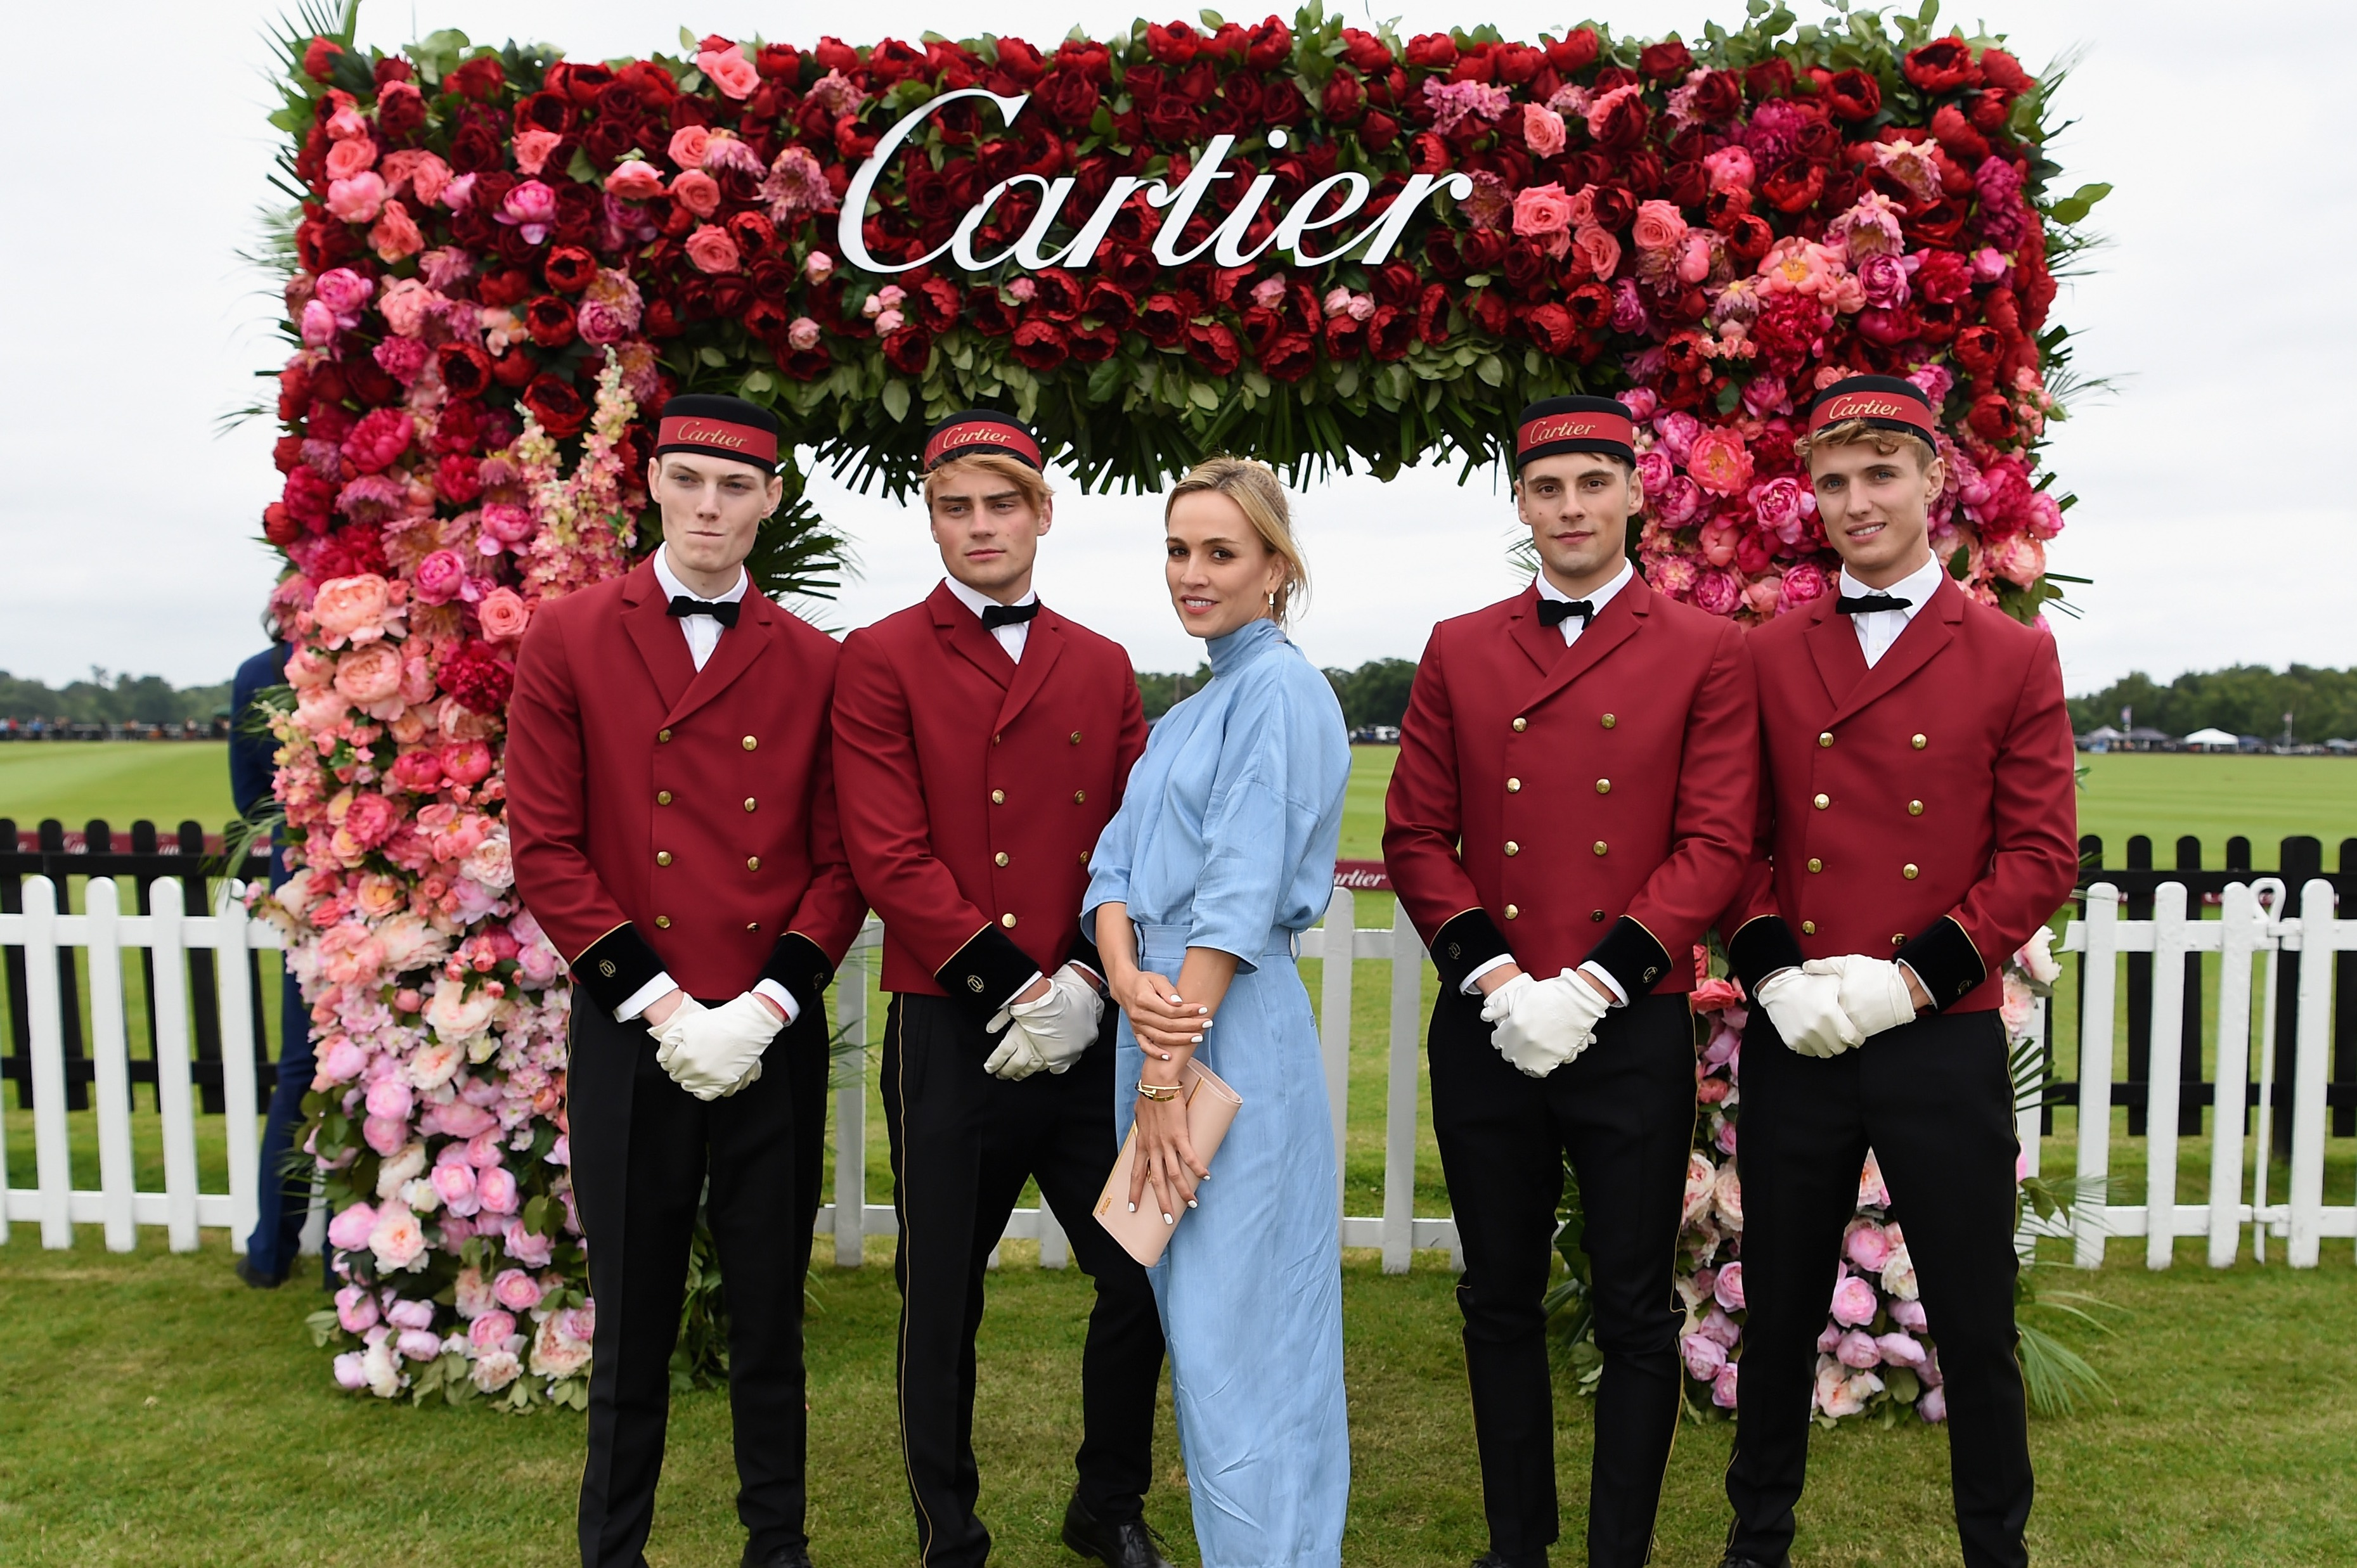 cartier queen's cup models posing in front of Cartier flower display